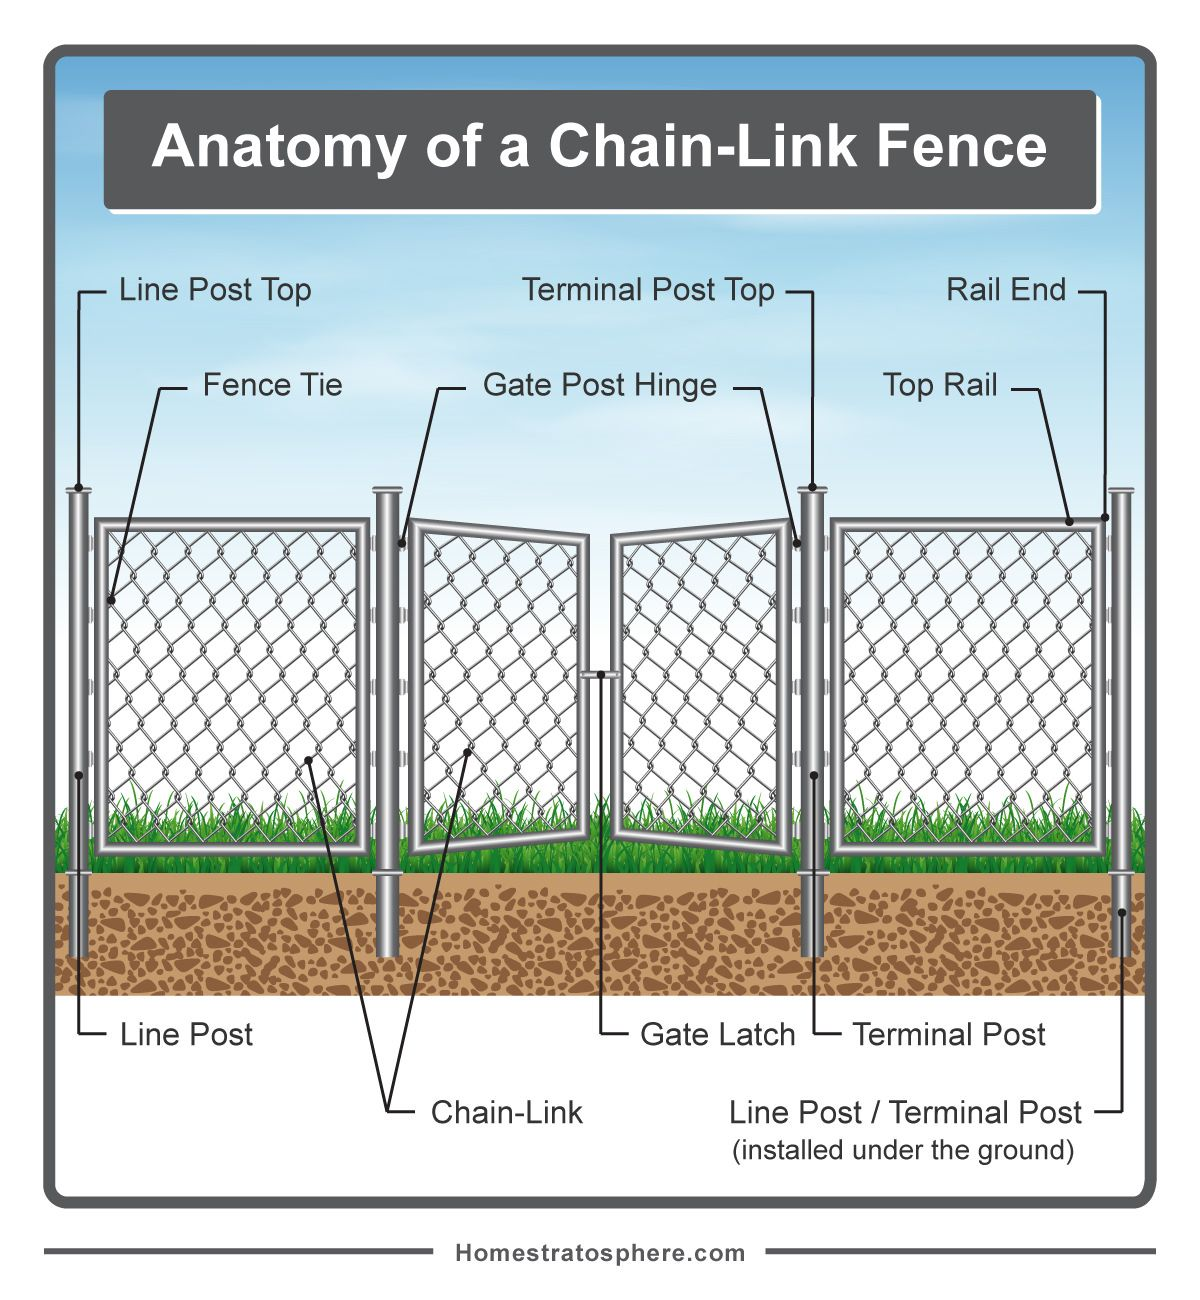 medium resolution of diagram showing the different parts of a chain link fence along with gate